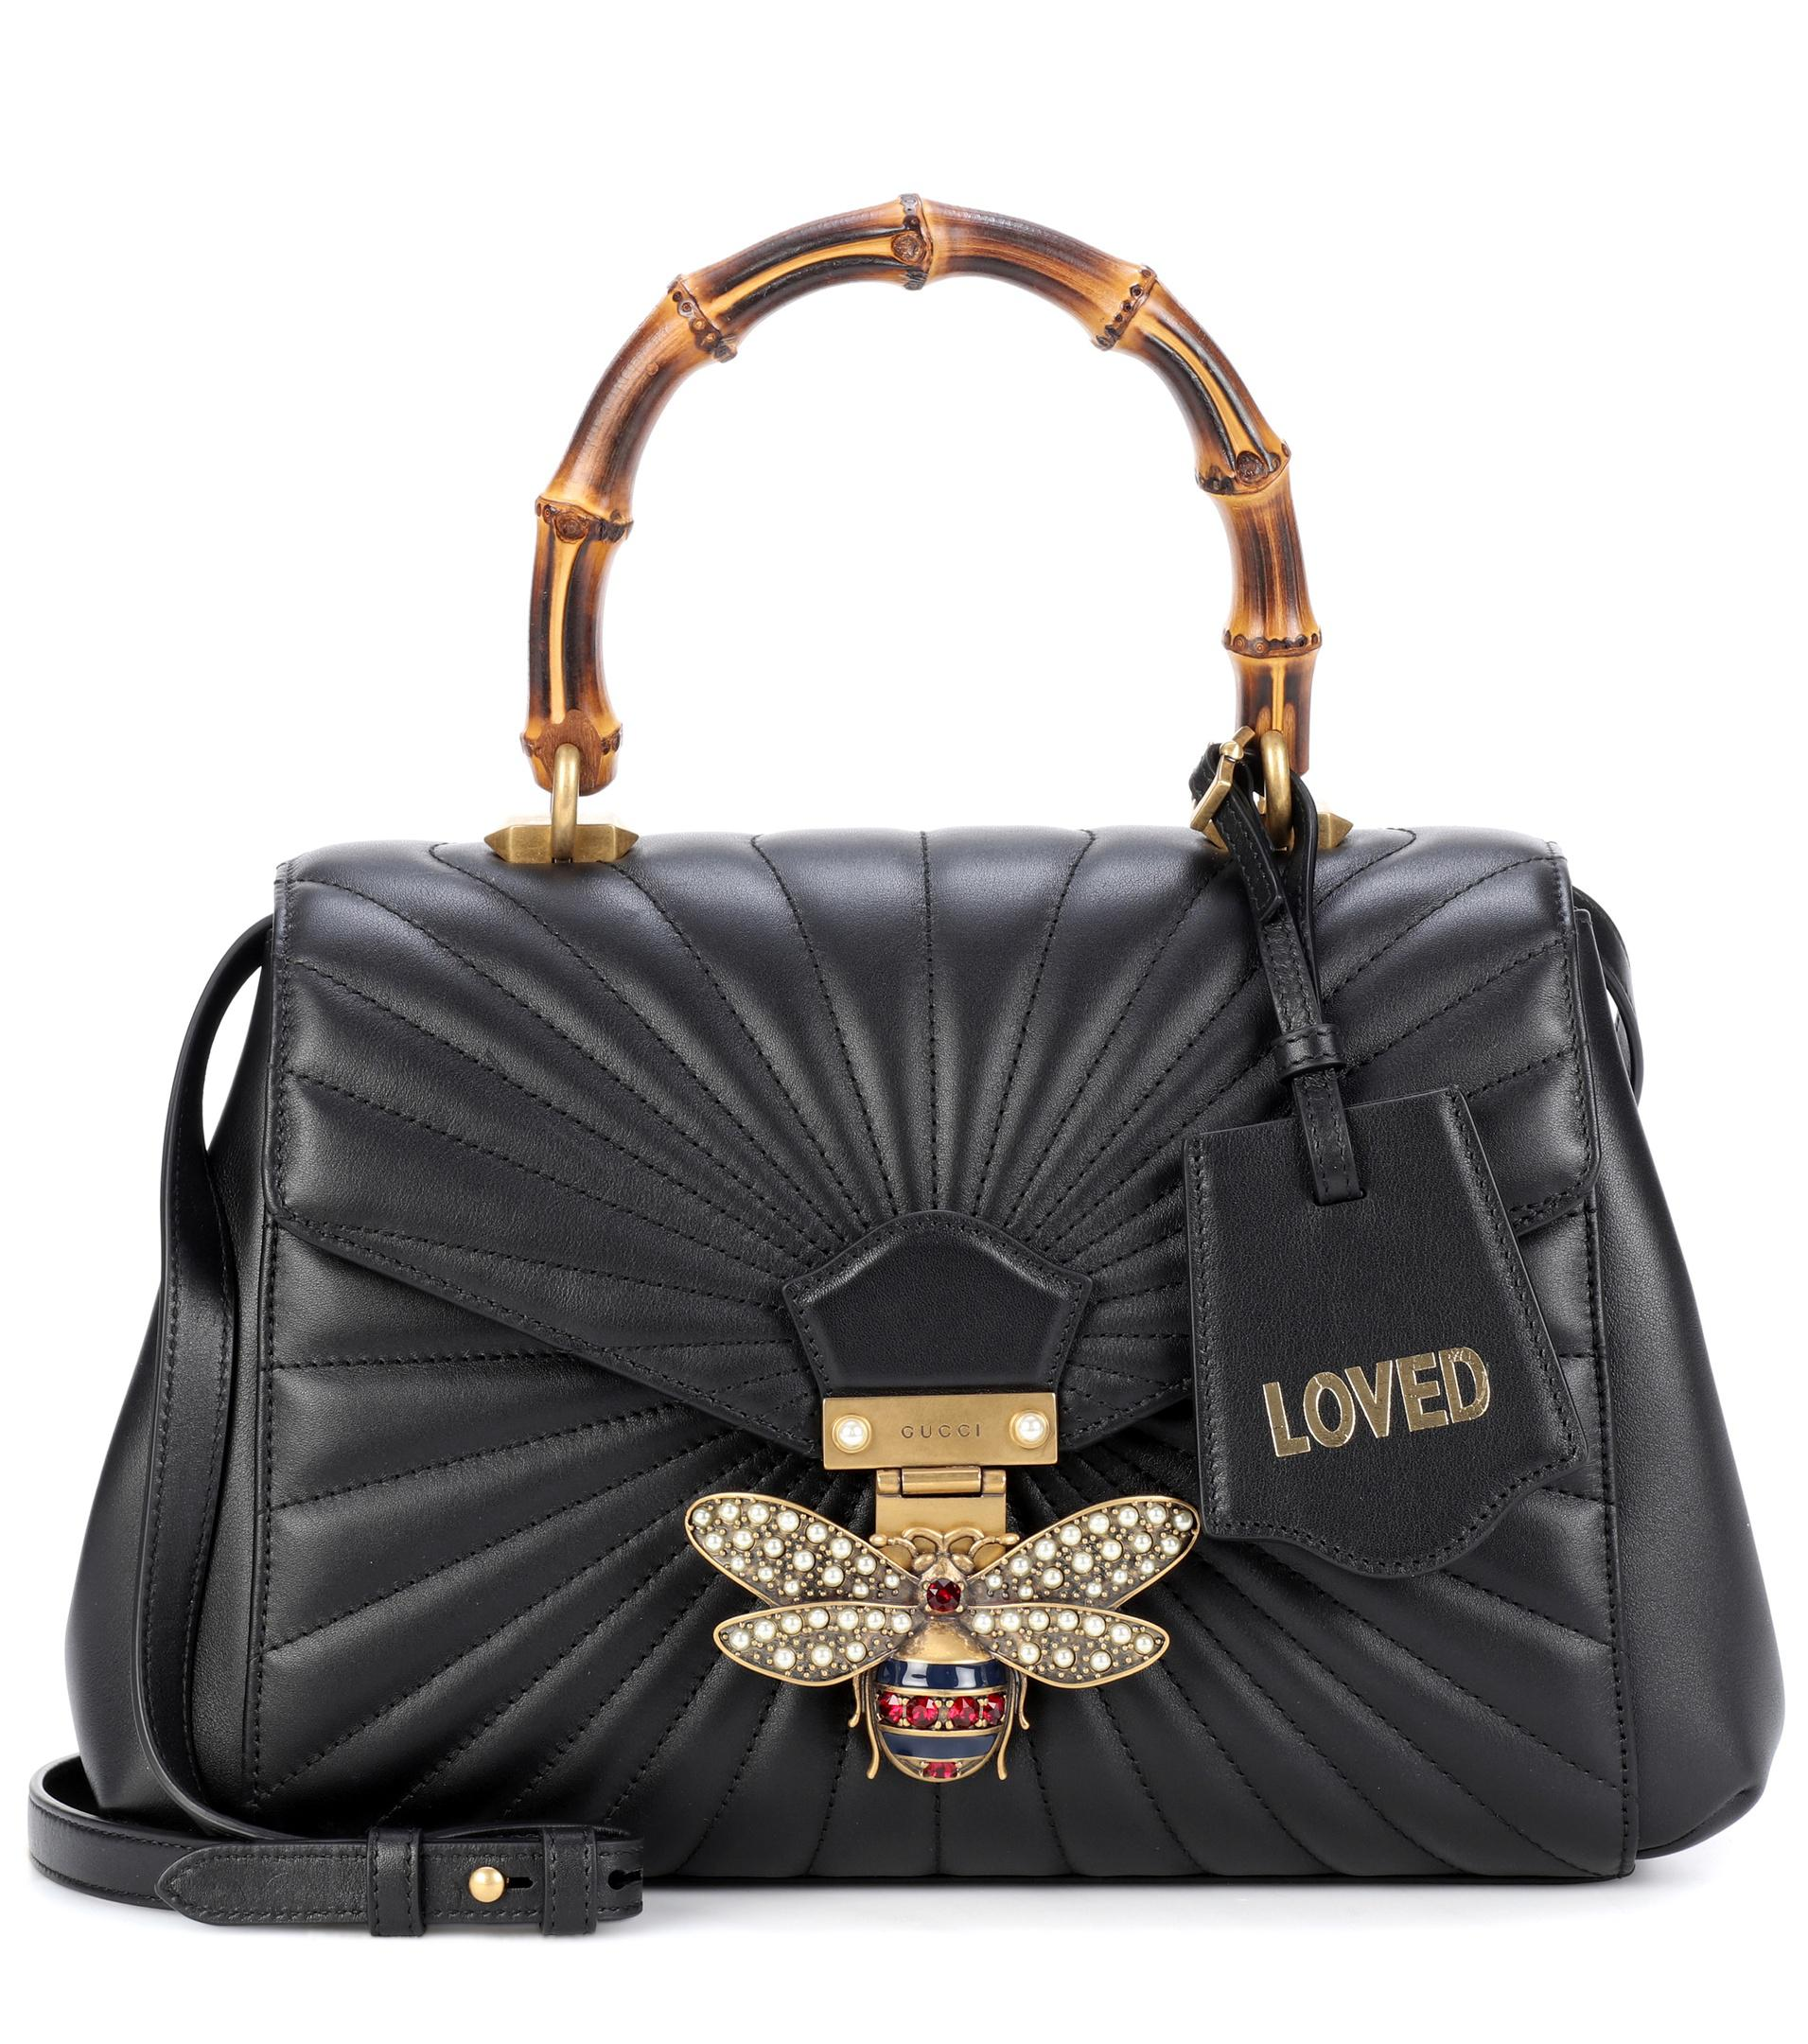 0082a80d2ee Gucci Queen Margaret Leather Top Handle Bag in Black - Lyst